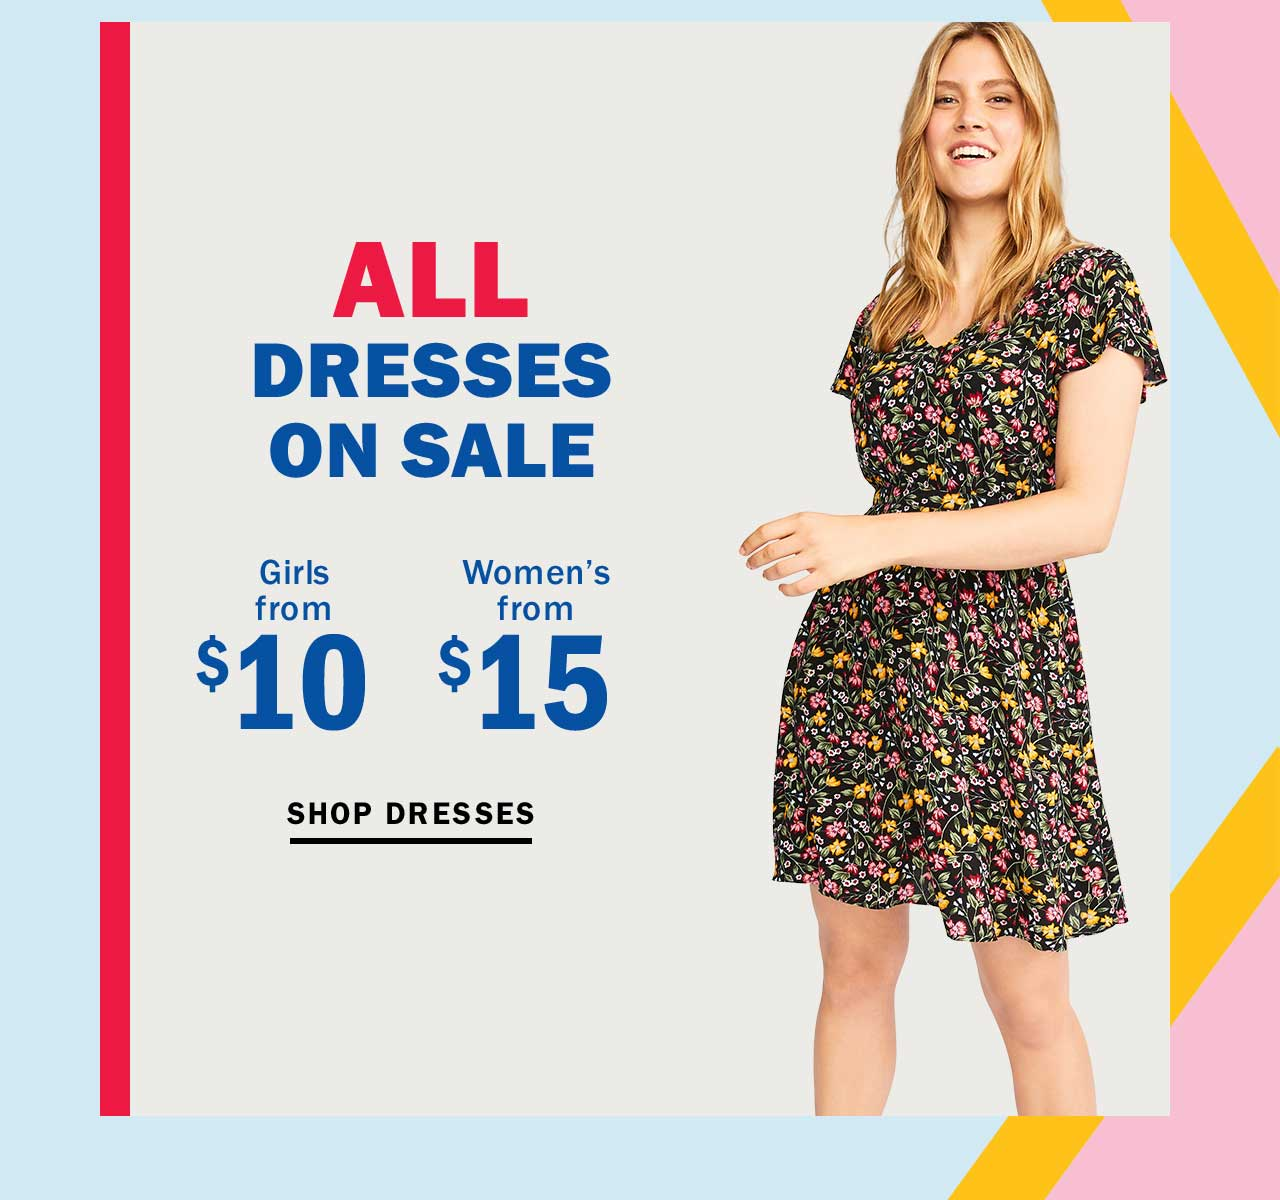 ALL DRESSES ON SALE | SHOP DRESSES